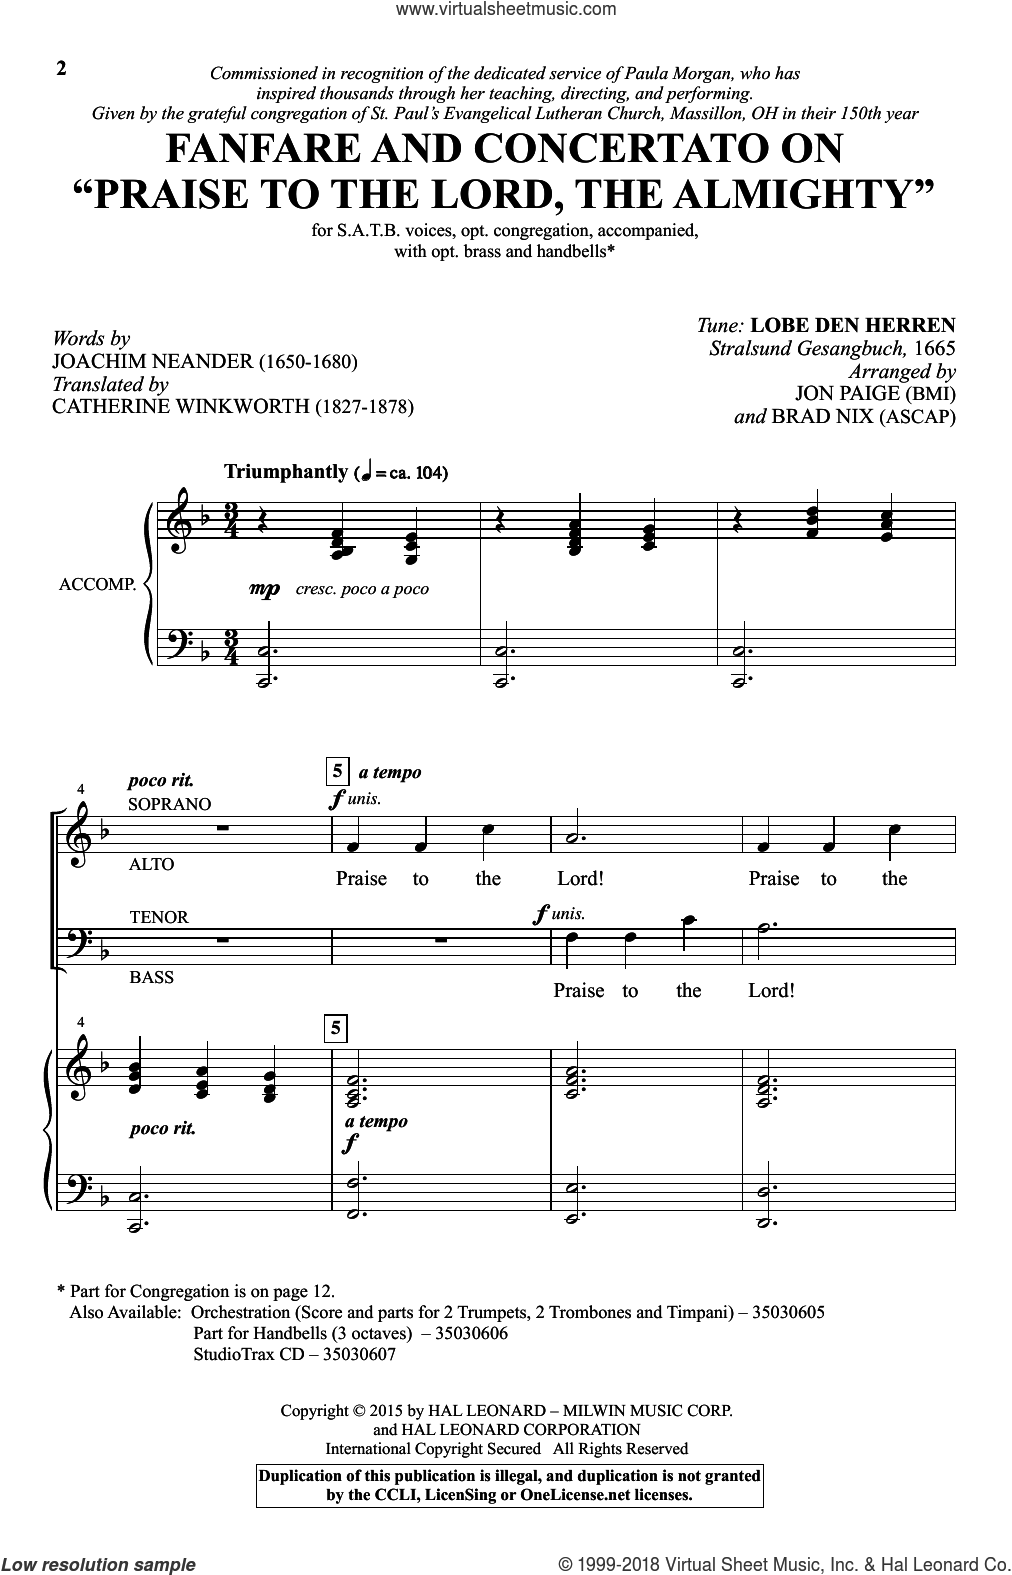 Praise To The Lord, The Almighty sheet music for choir by Catherine Winkworth, Brad Nix, Jon Paige, Erneuerten Gesangbuch and Joachim Neander, intermediate. Score Image Preview.